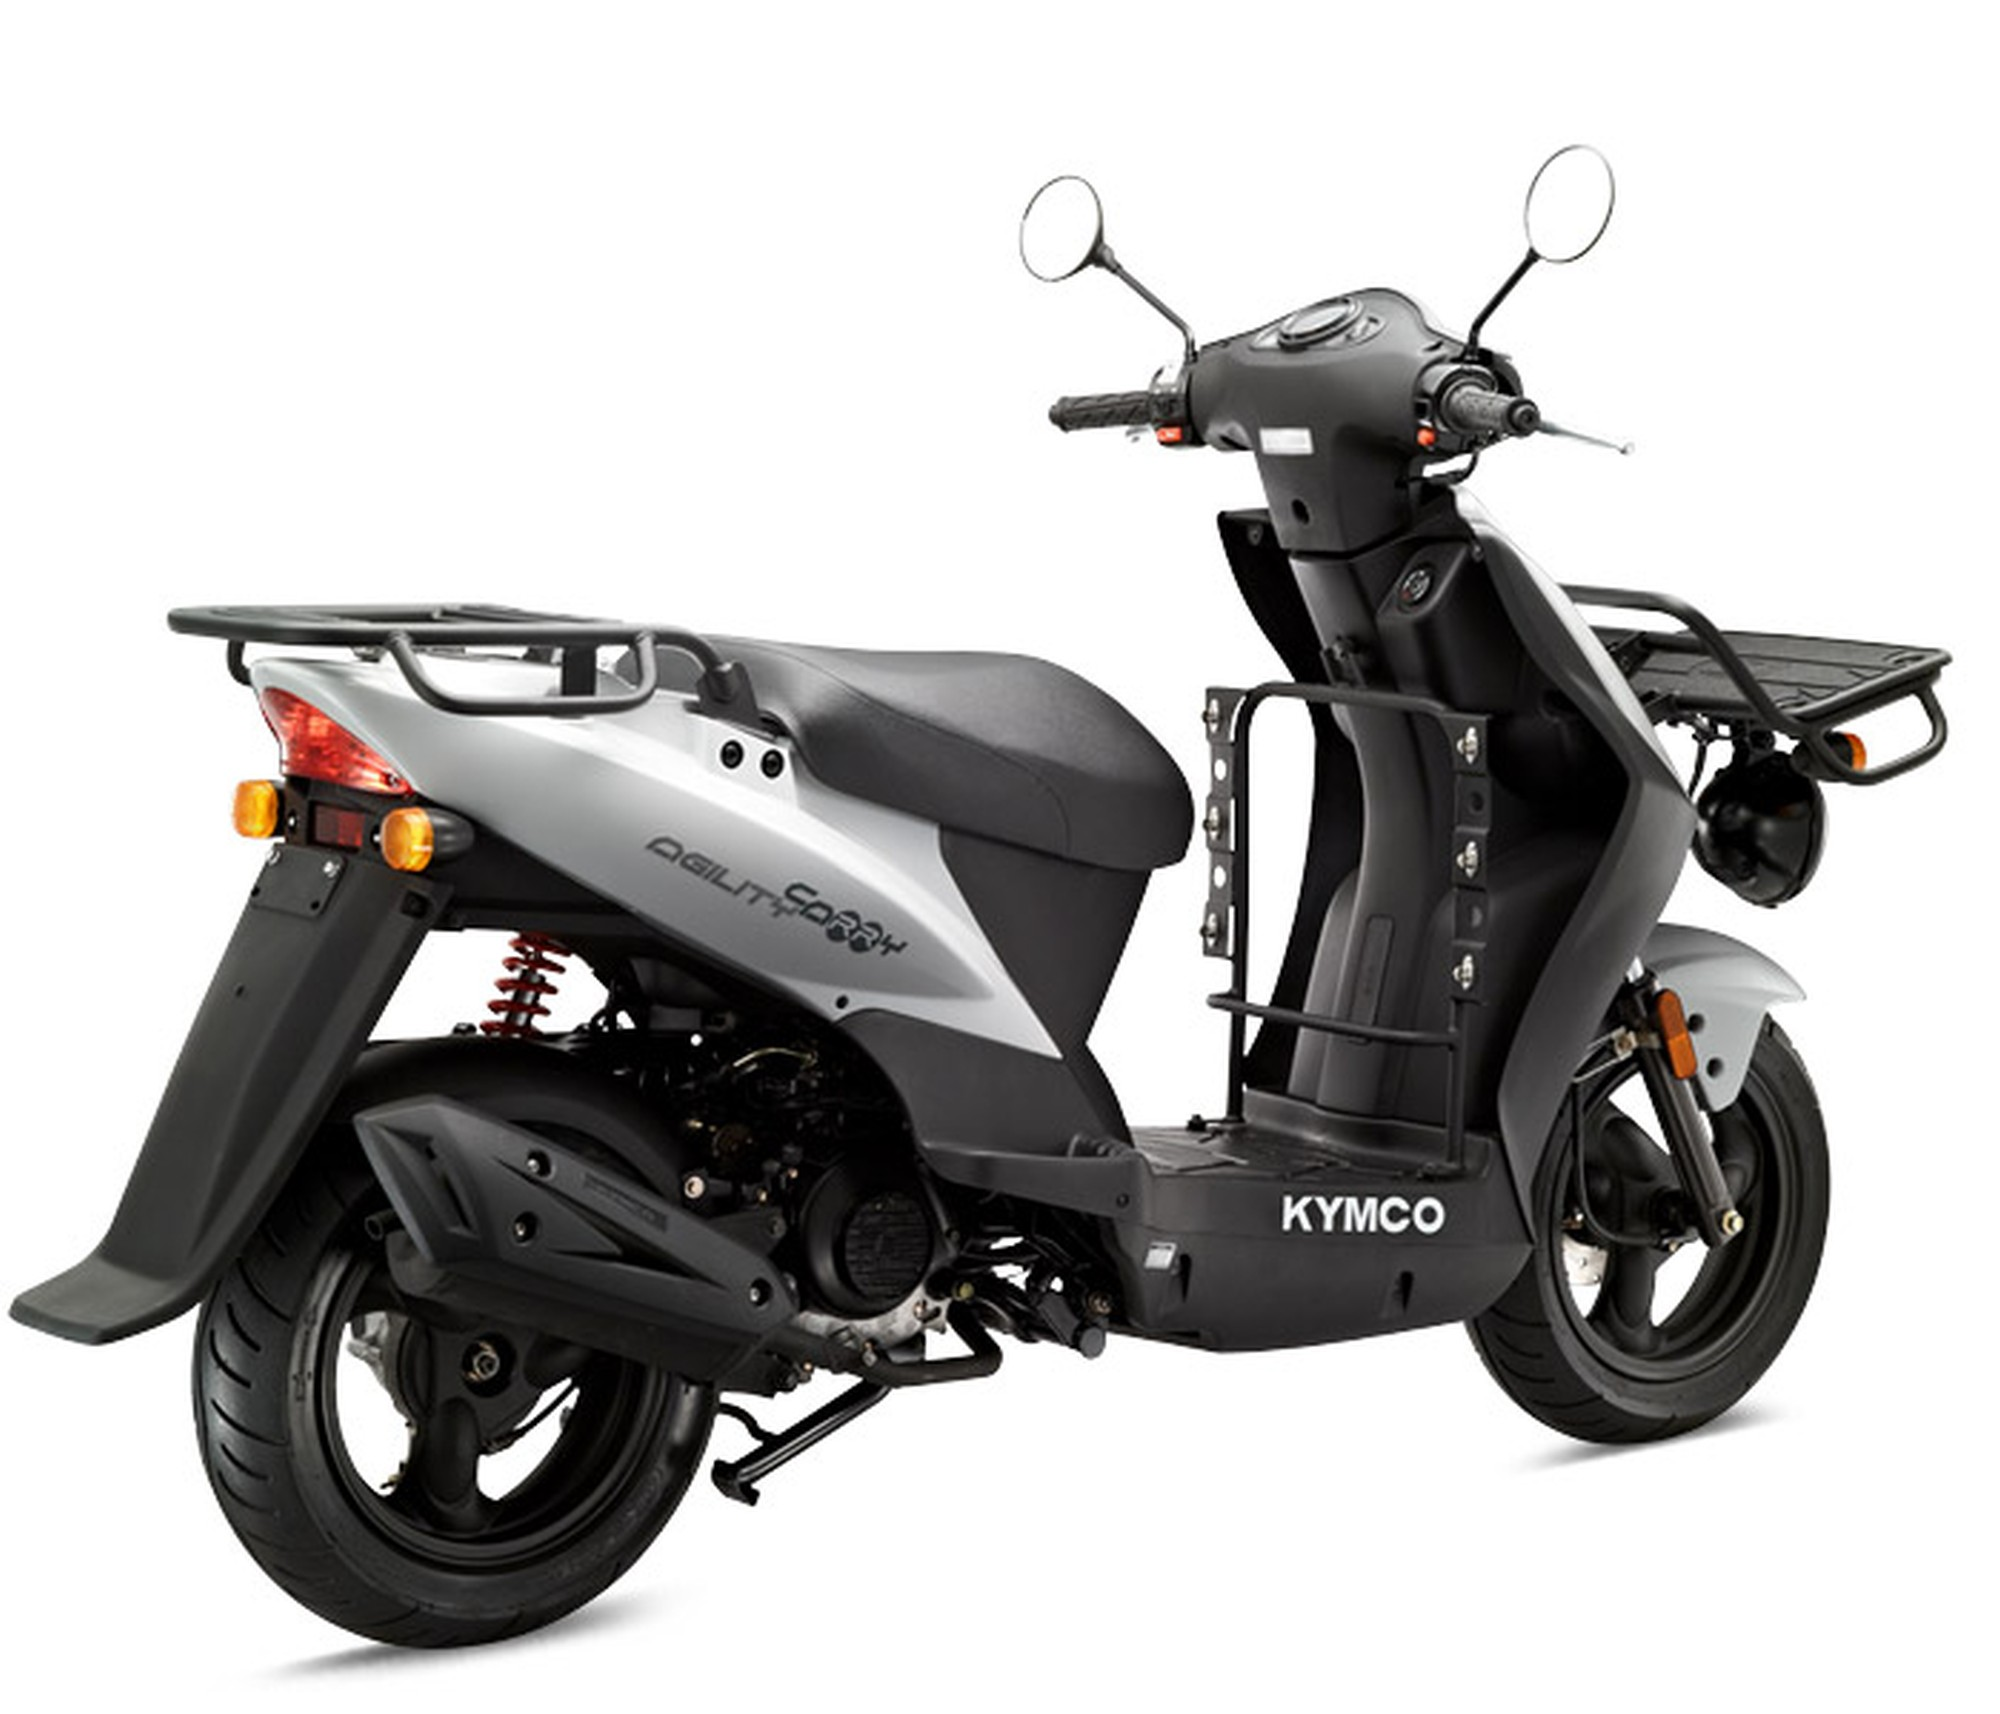 kymco agility carry 50 all technical data of the model agility carry 50 from kymco. Black Bedroom Furniture Sets. Home Design Ideas